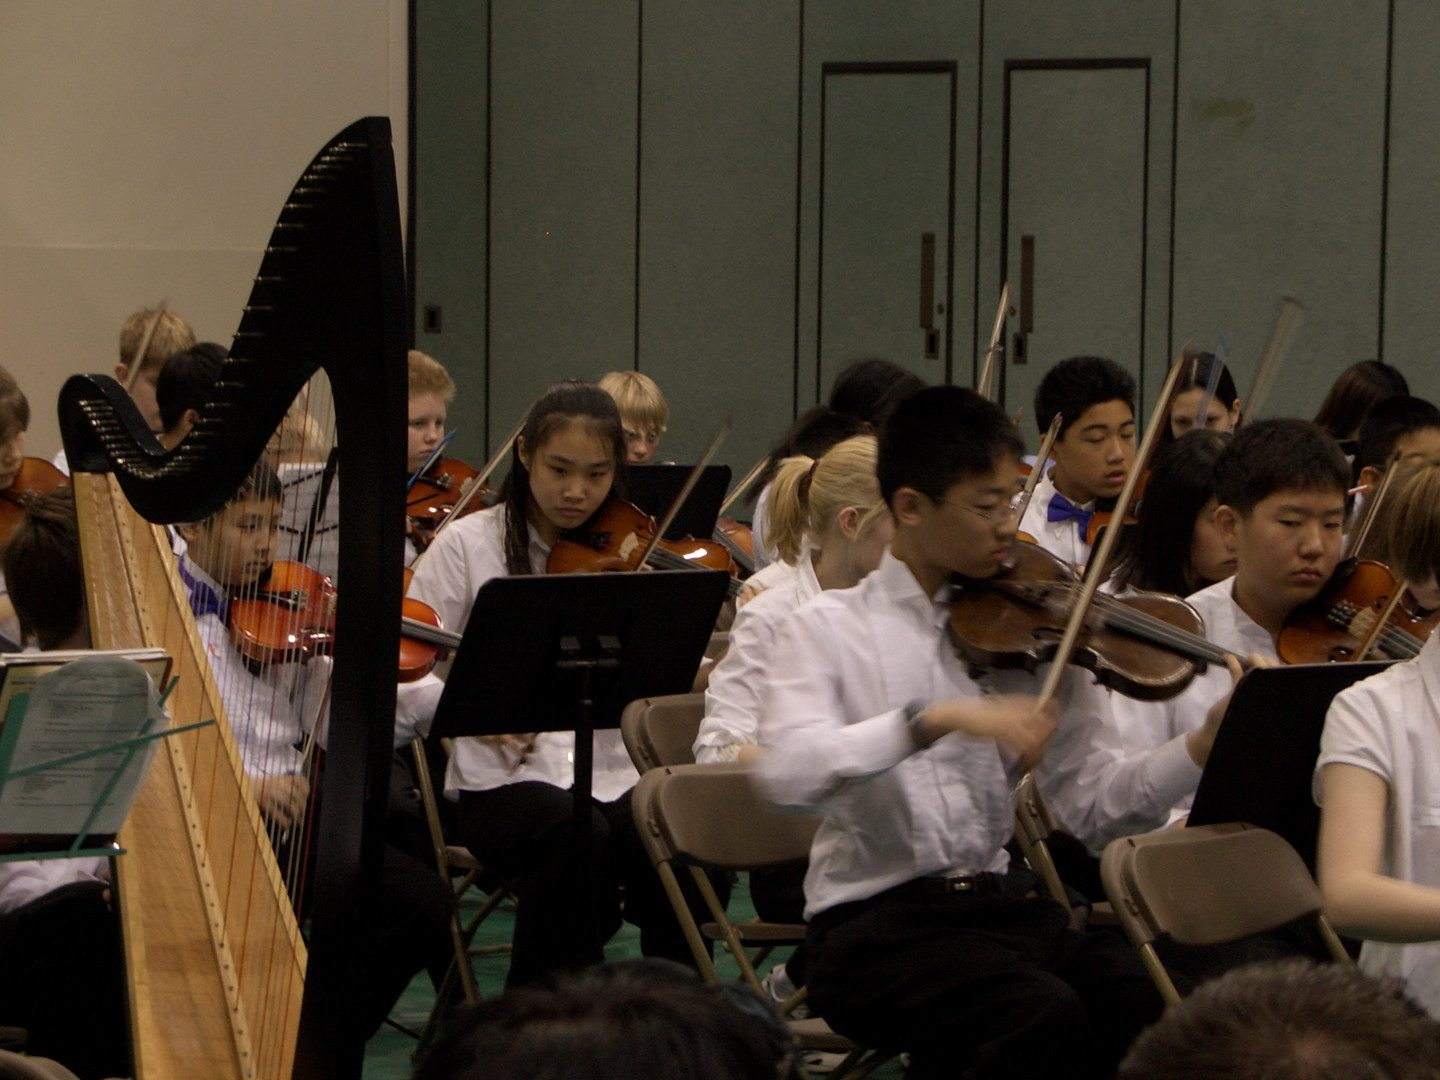 Orchestra pictures 010.jpg